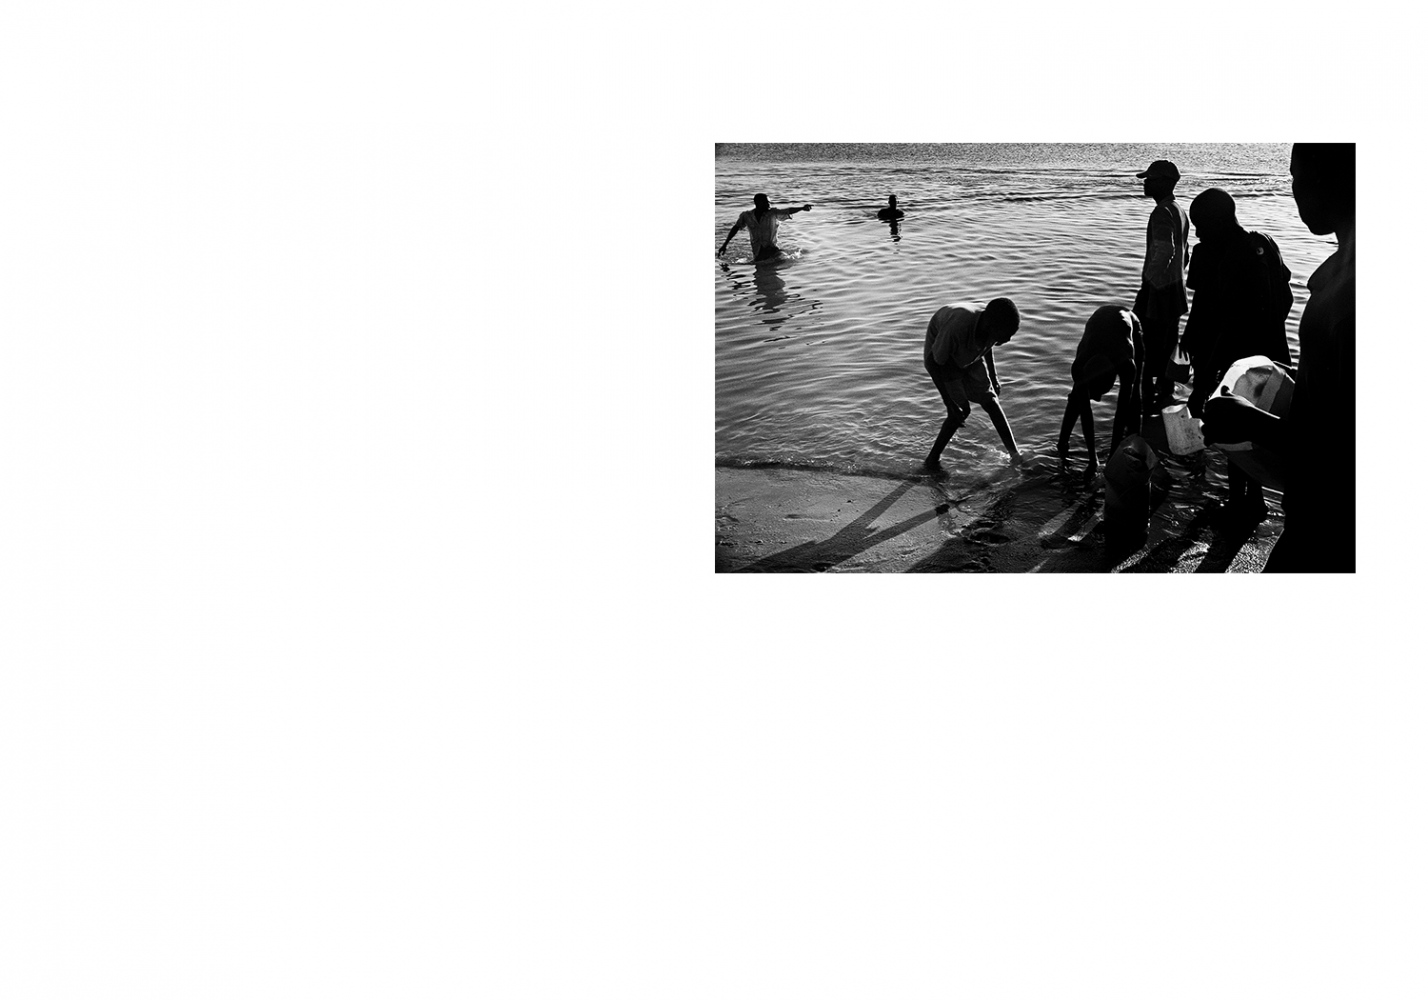 Art and Documentary Photography - Loading page_38.jpg